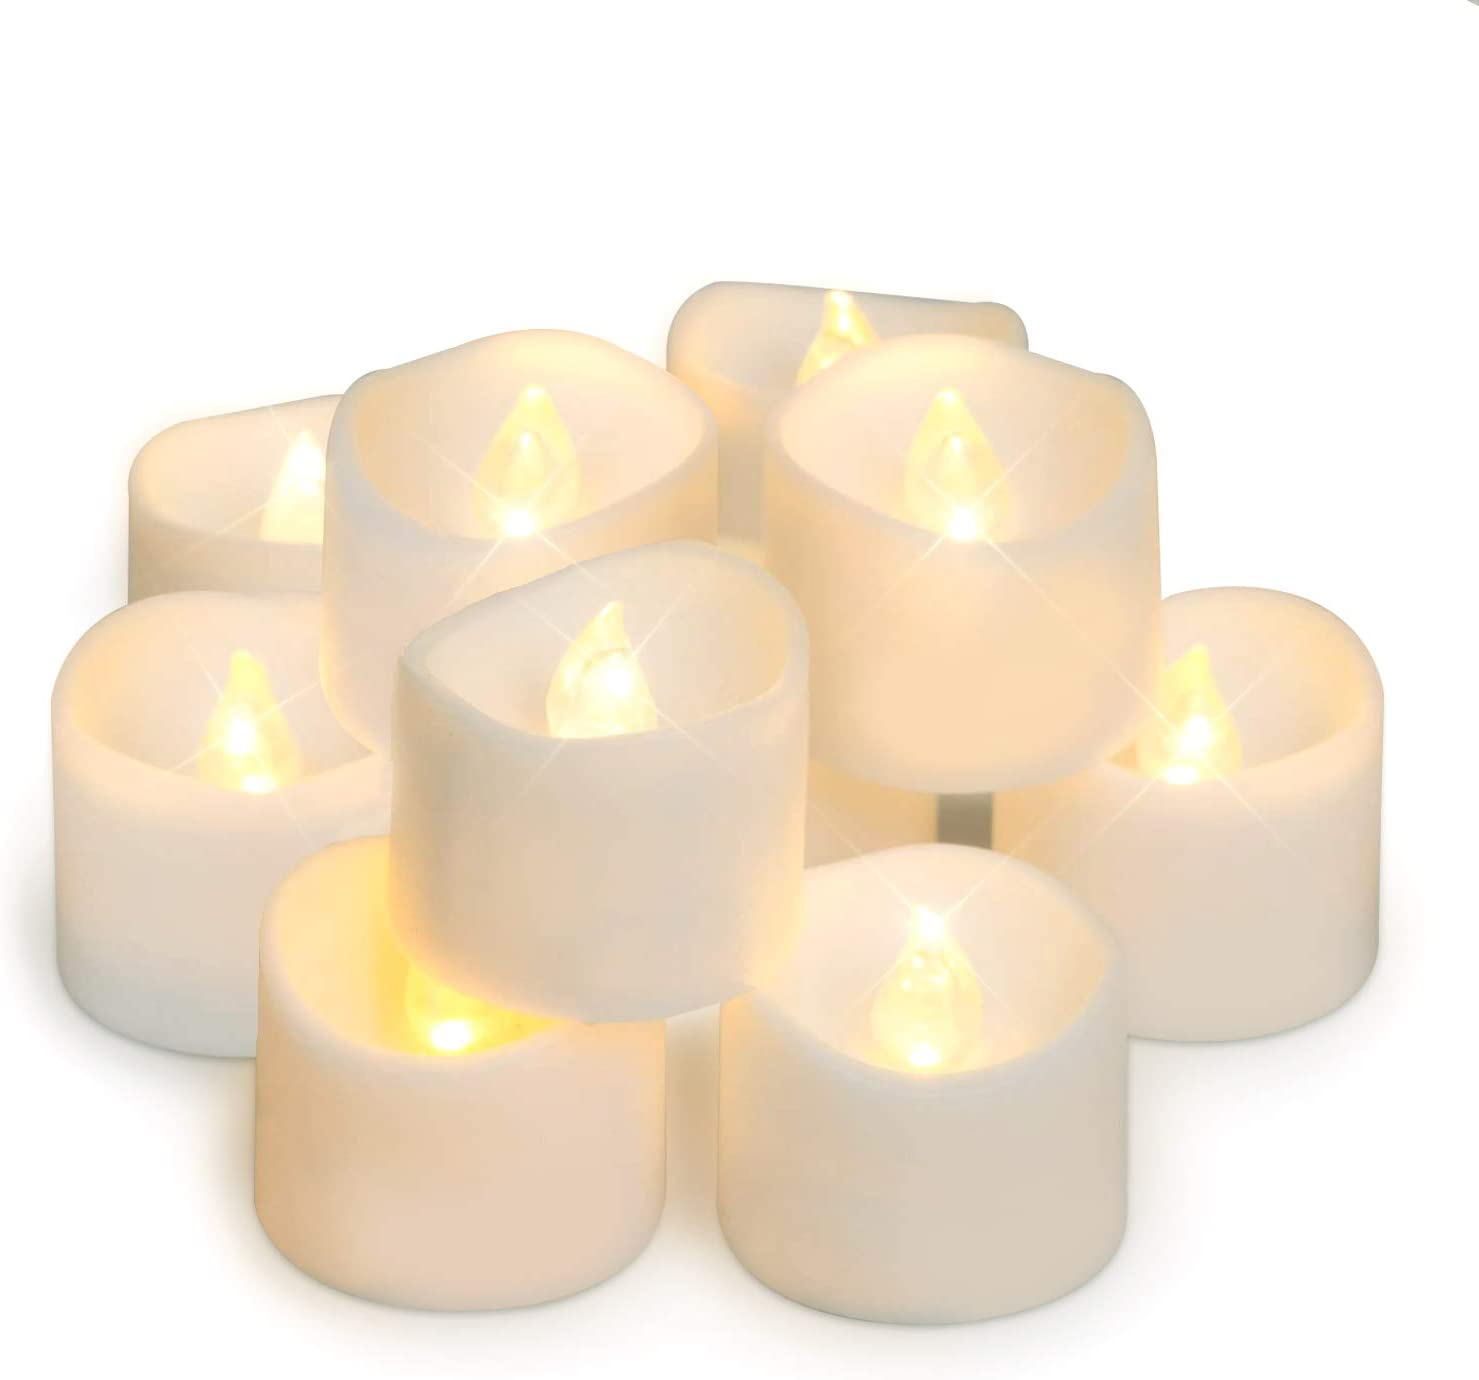 Amagic 48 Pack Flameless Tea Lights, Battery Operated LED TeaLight Candles for Mothers Day Gifts, Warm White, Flickering, D1.4'' H1.25''